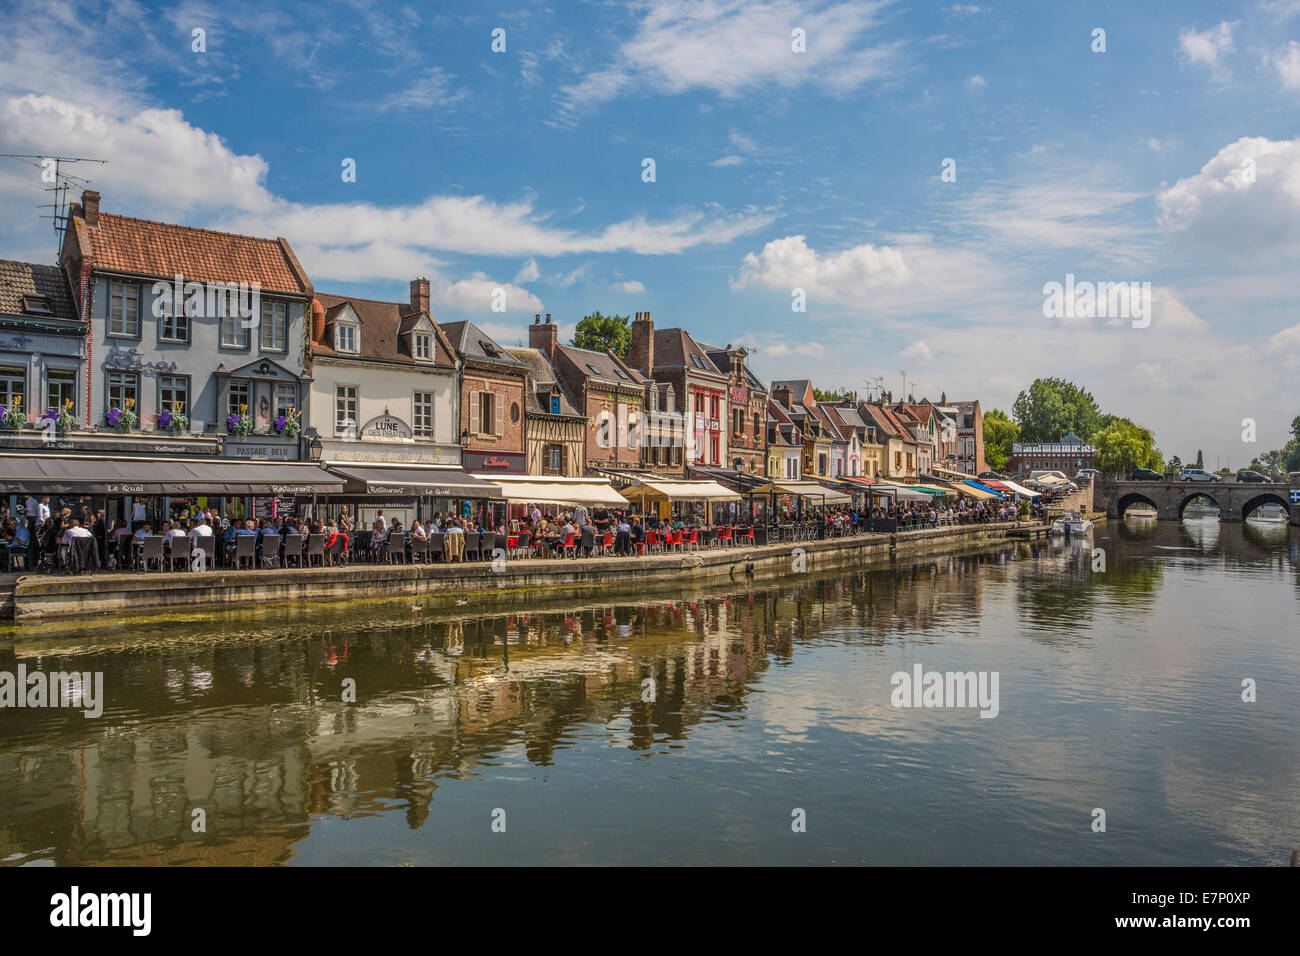 world heritage, Amiens, France, Europe, architecture, canal, city, cityscape, out doors, reflection, restaurant, - Stock Image